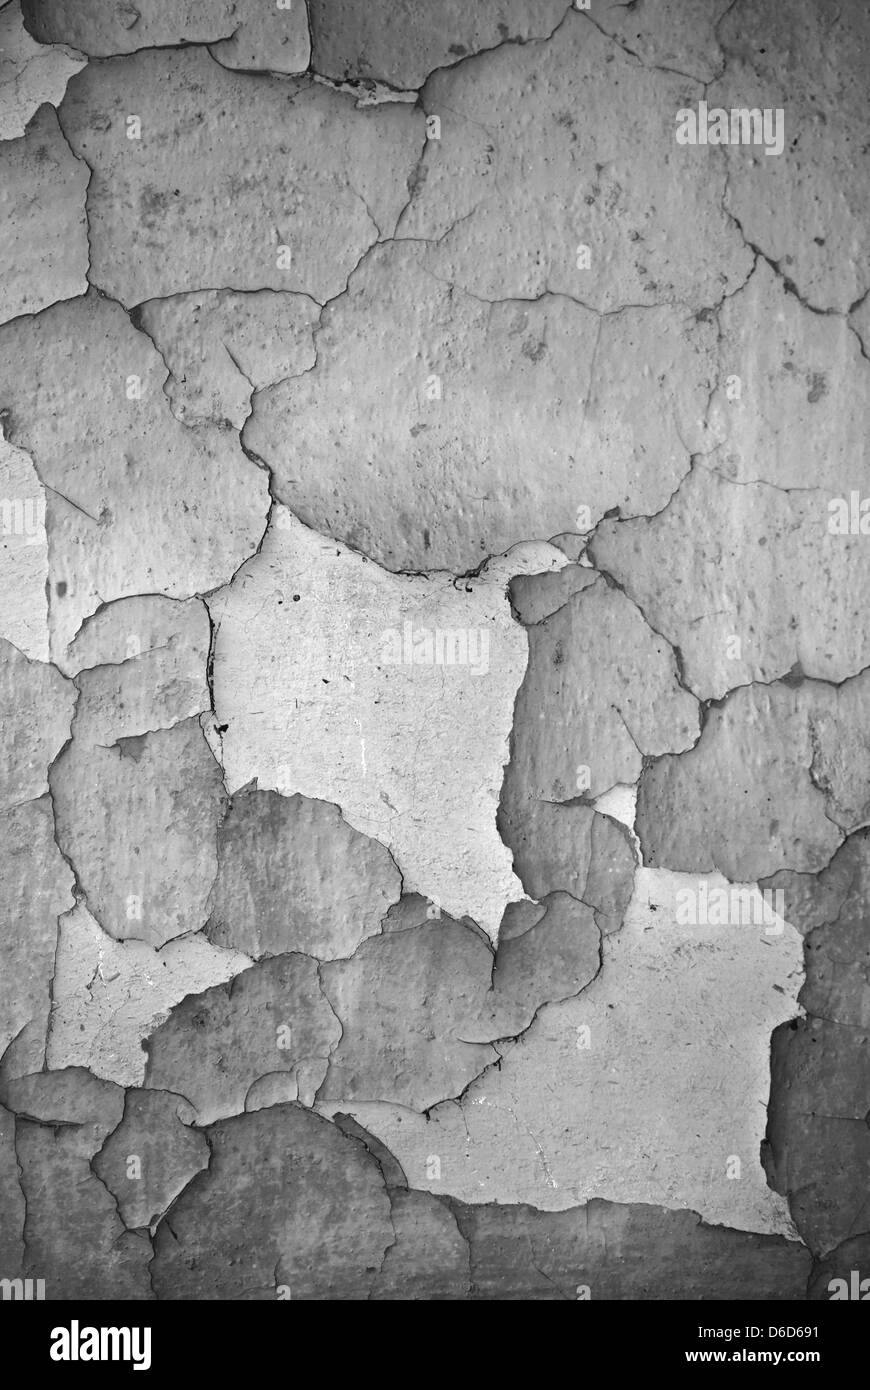 old wall texture - Stock Image